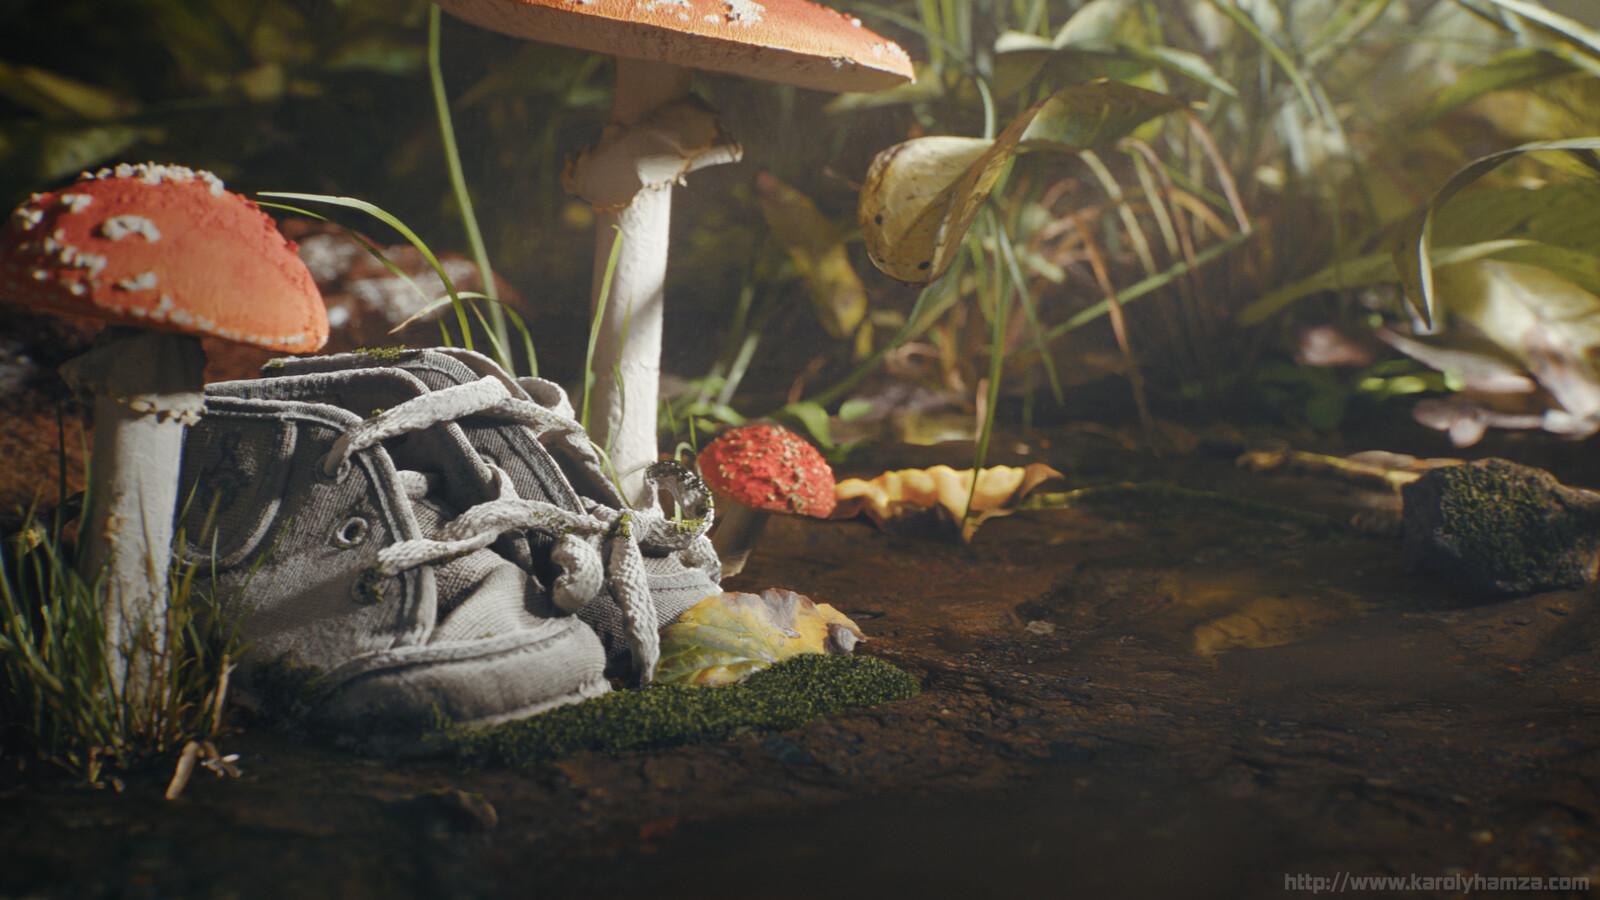 My baby shoes in the forest. :) Full CG work.